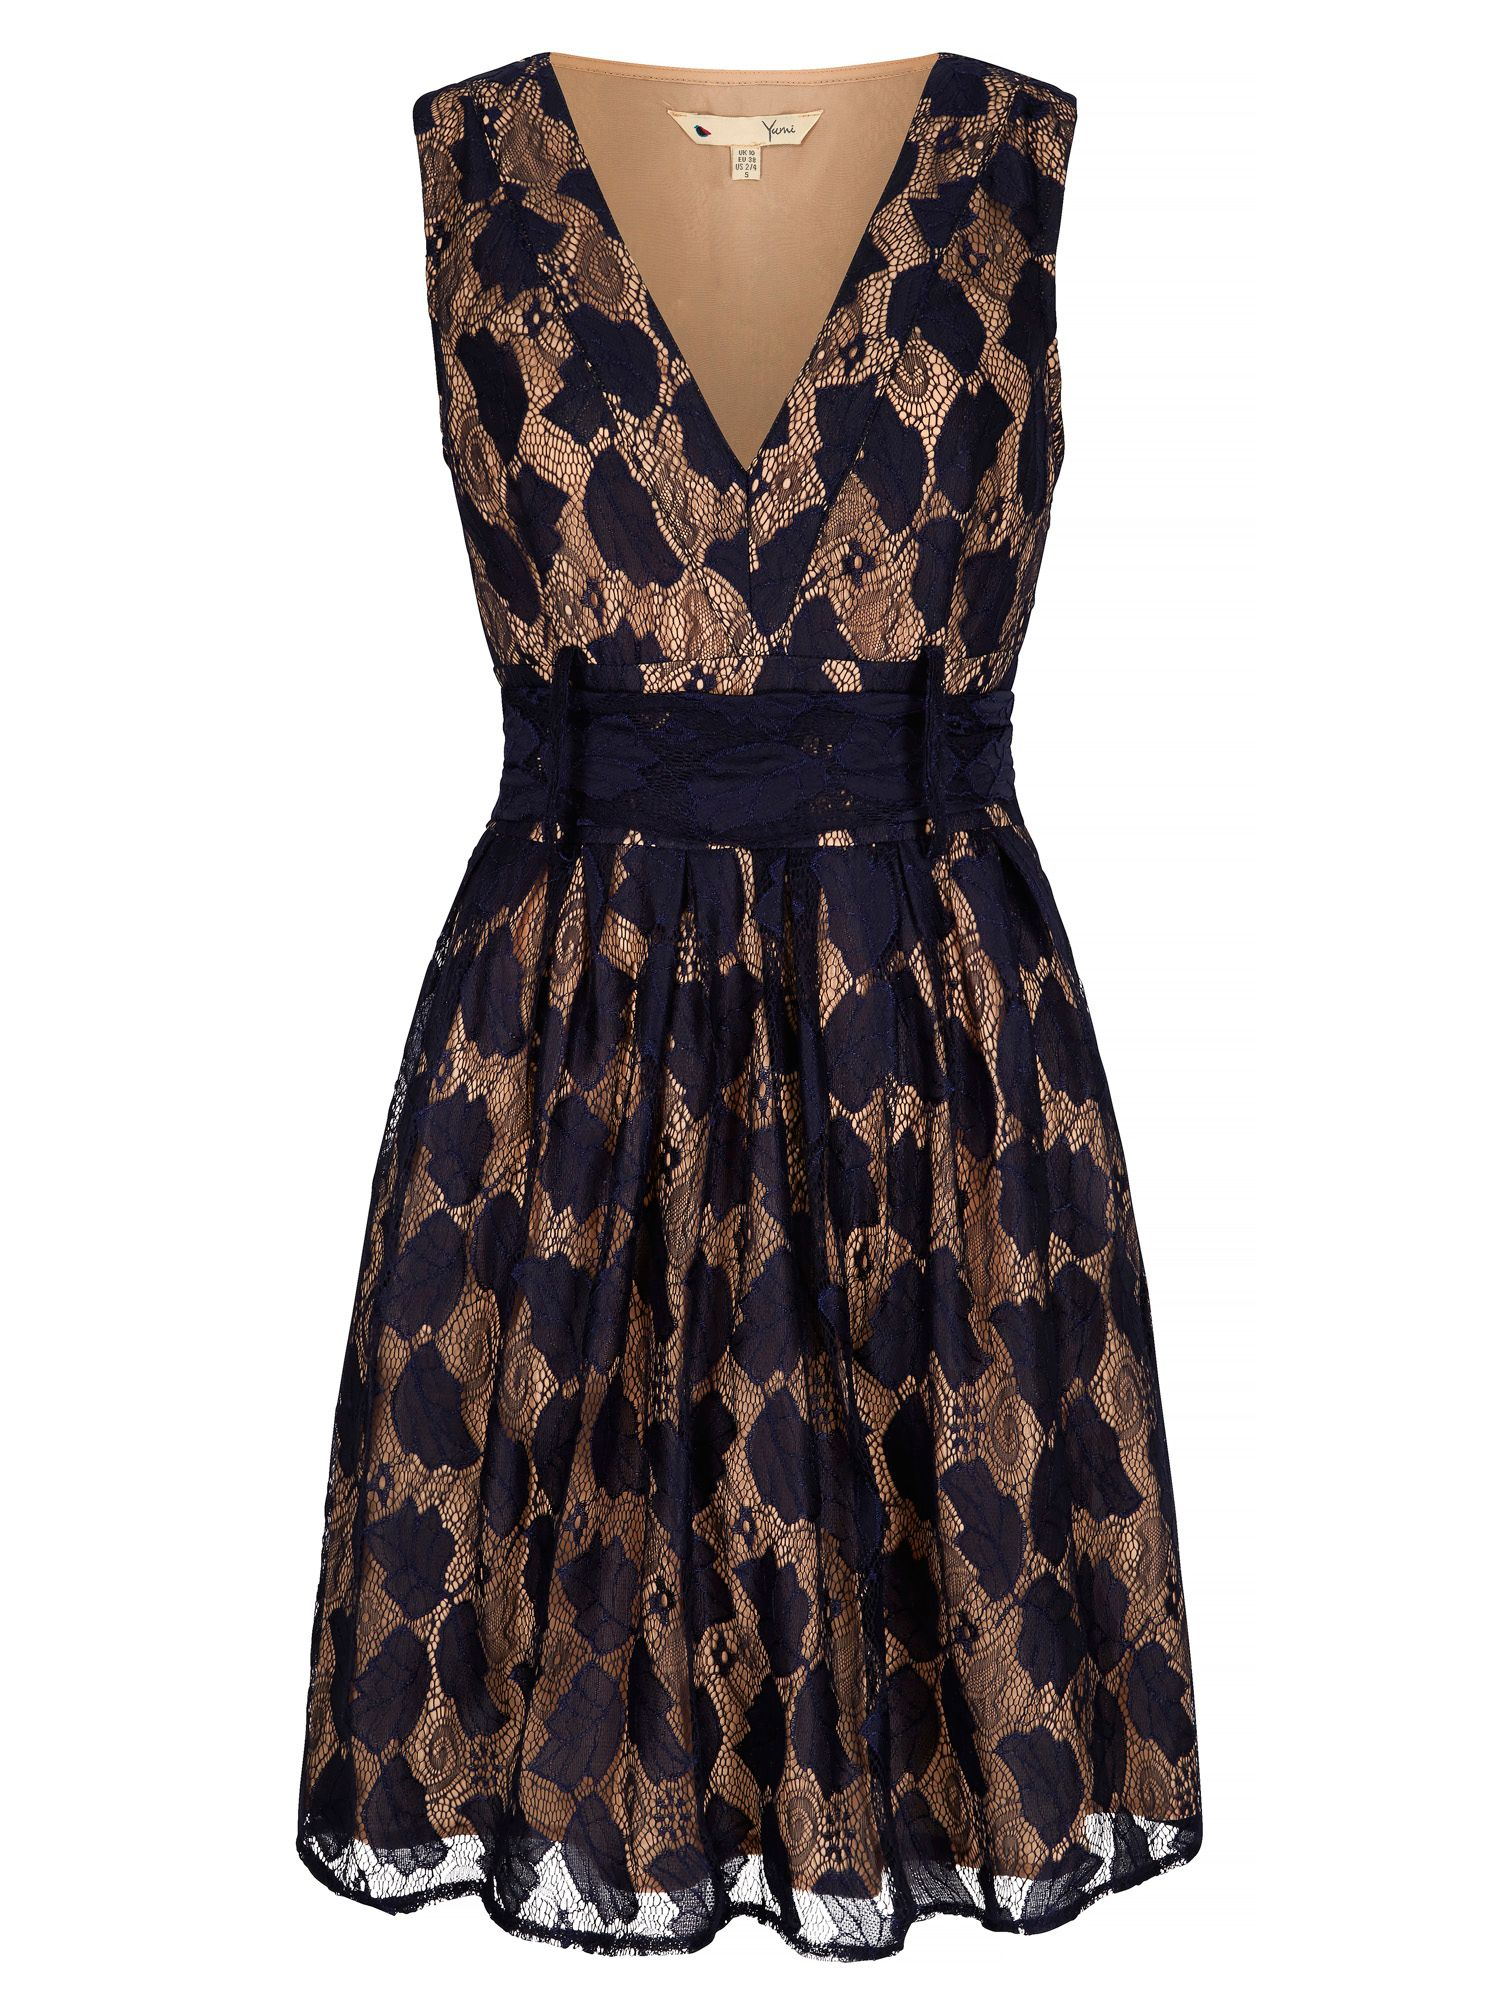 Yumi Vintage Lace Dress, Blue